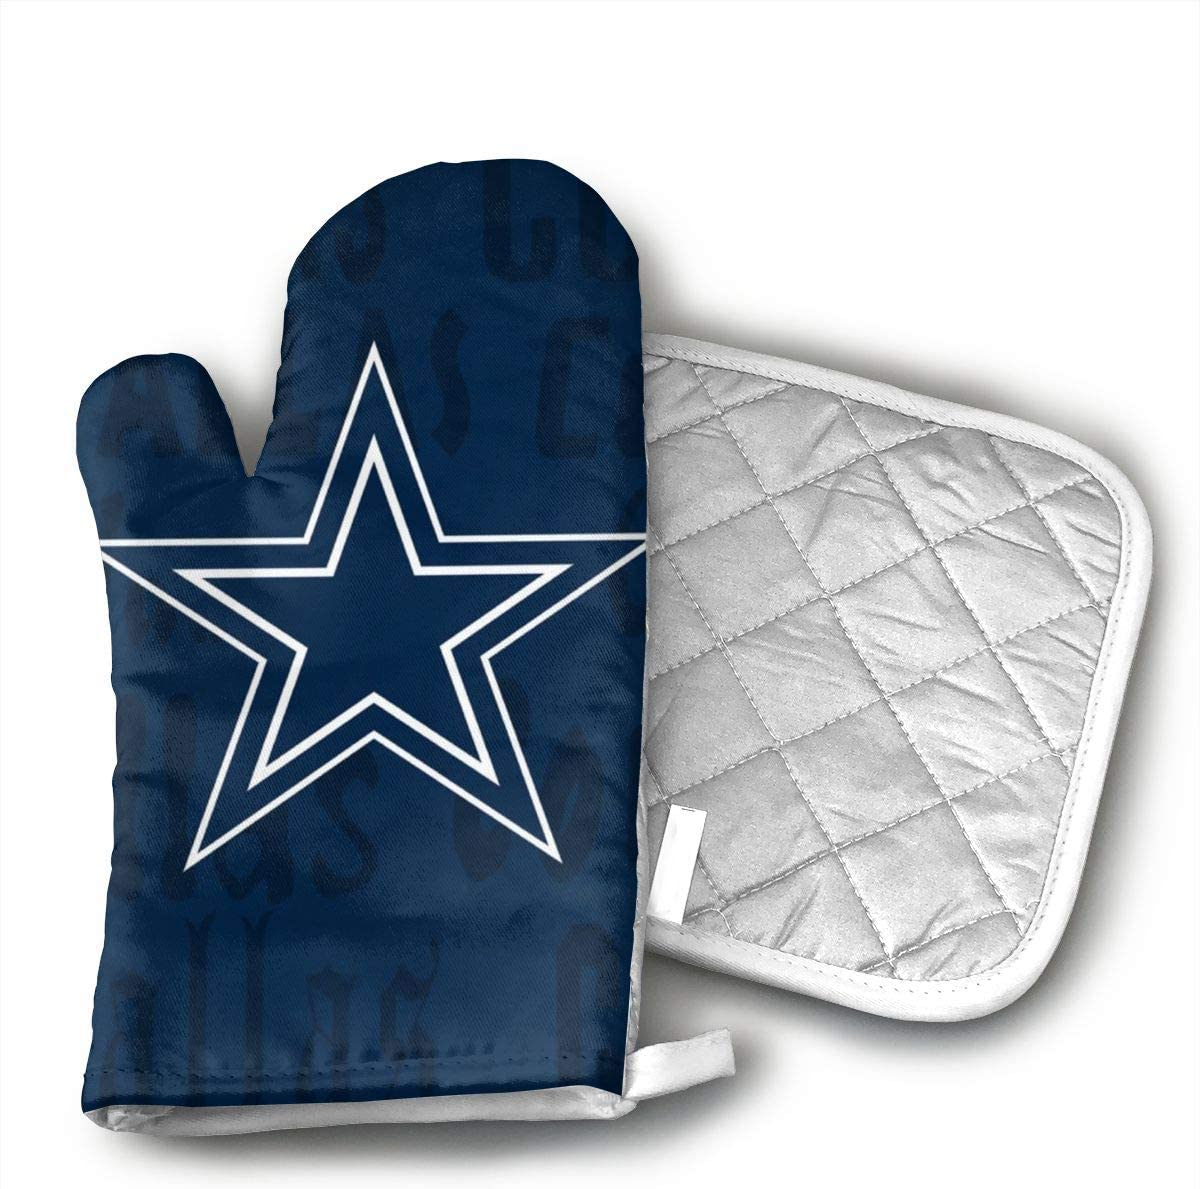 JFNNRUOP Dallas Cowboys Oven Mitts,with Potholders Oven Gloves,Insulated Quilted Cotton Potholders